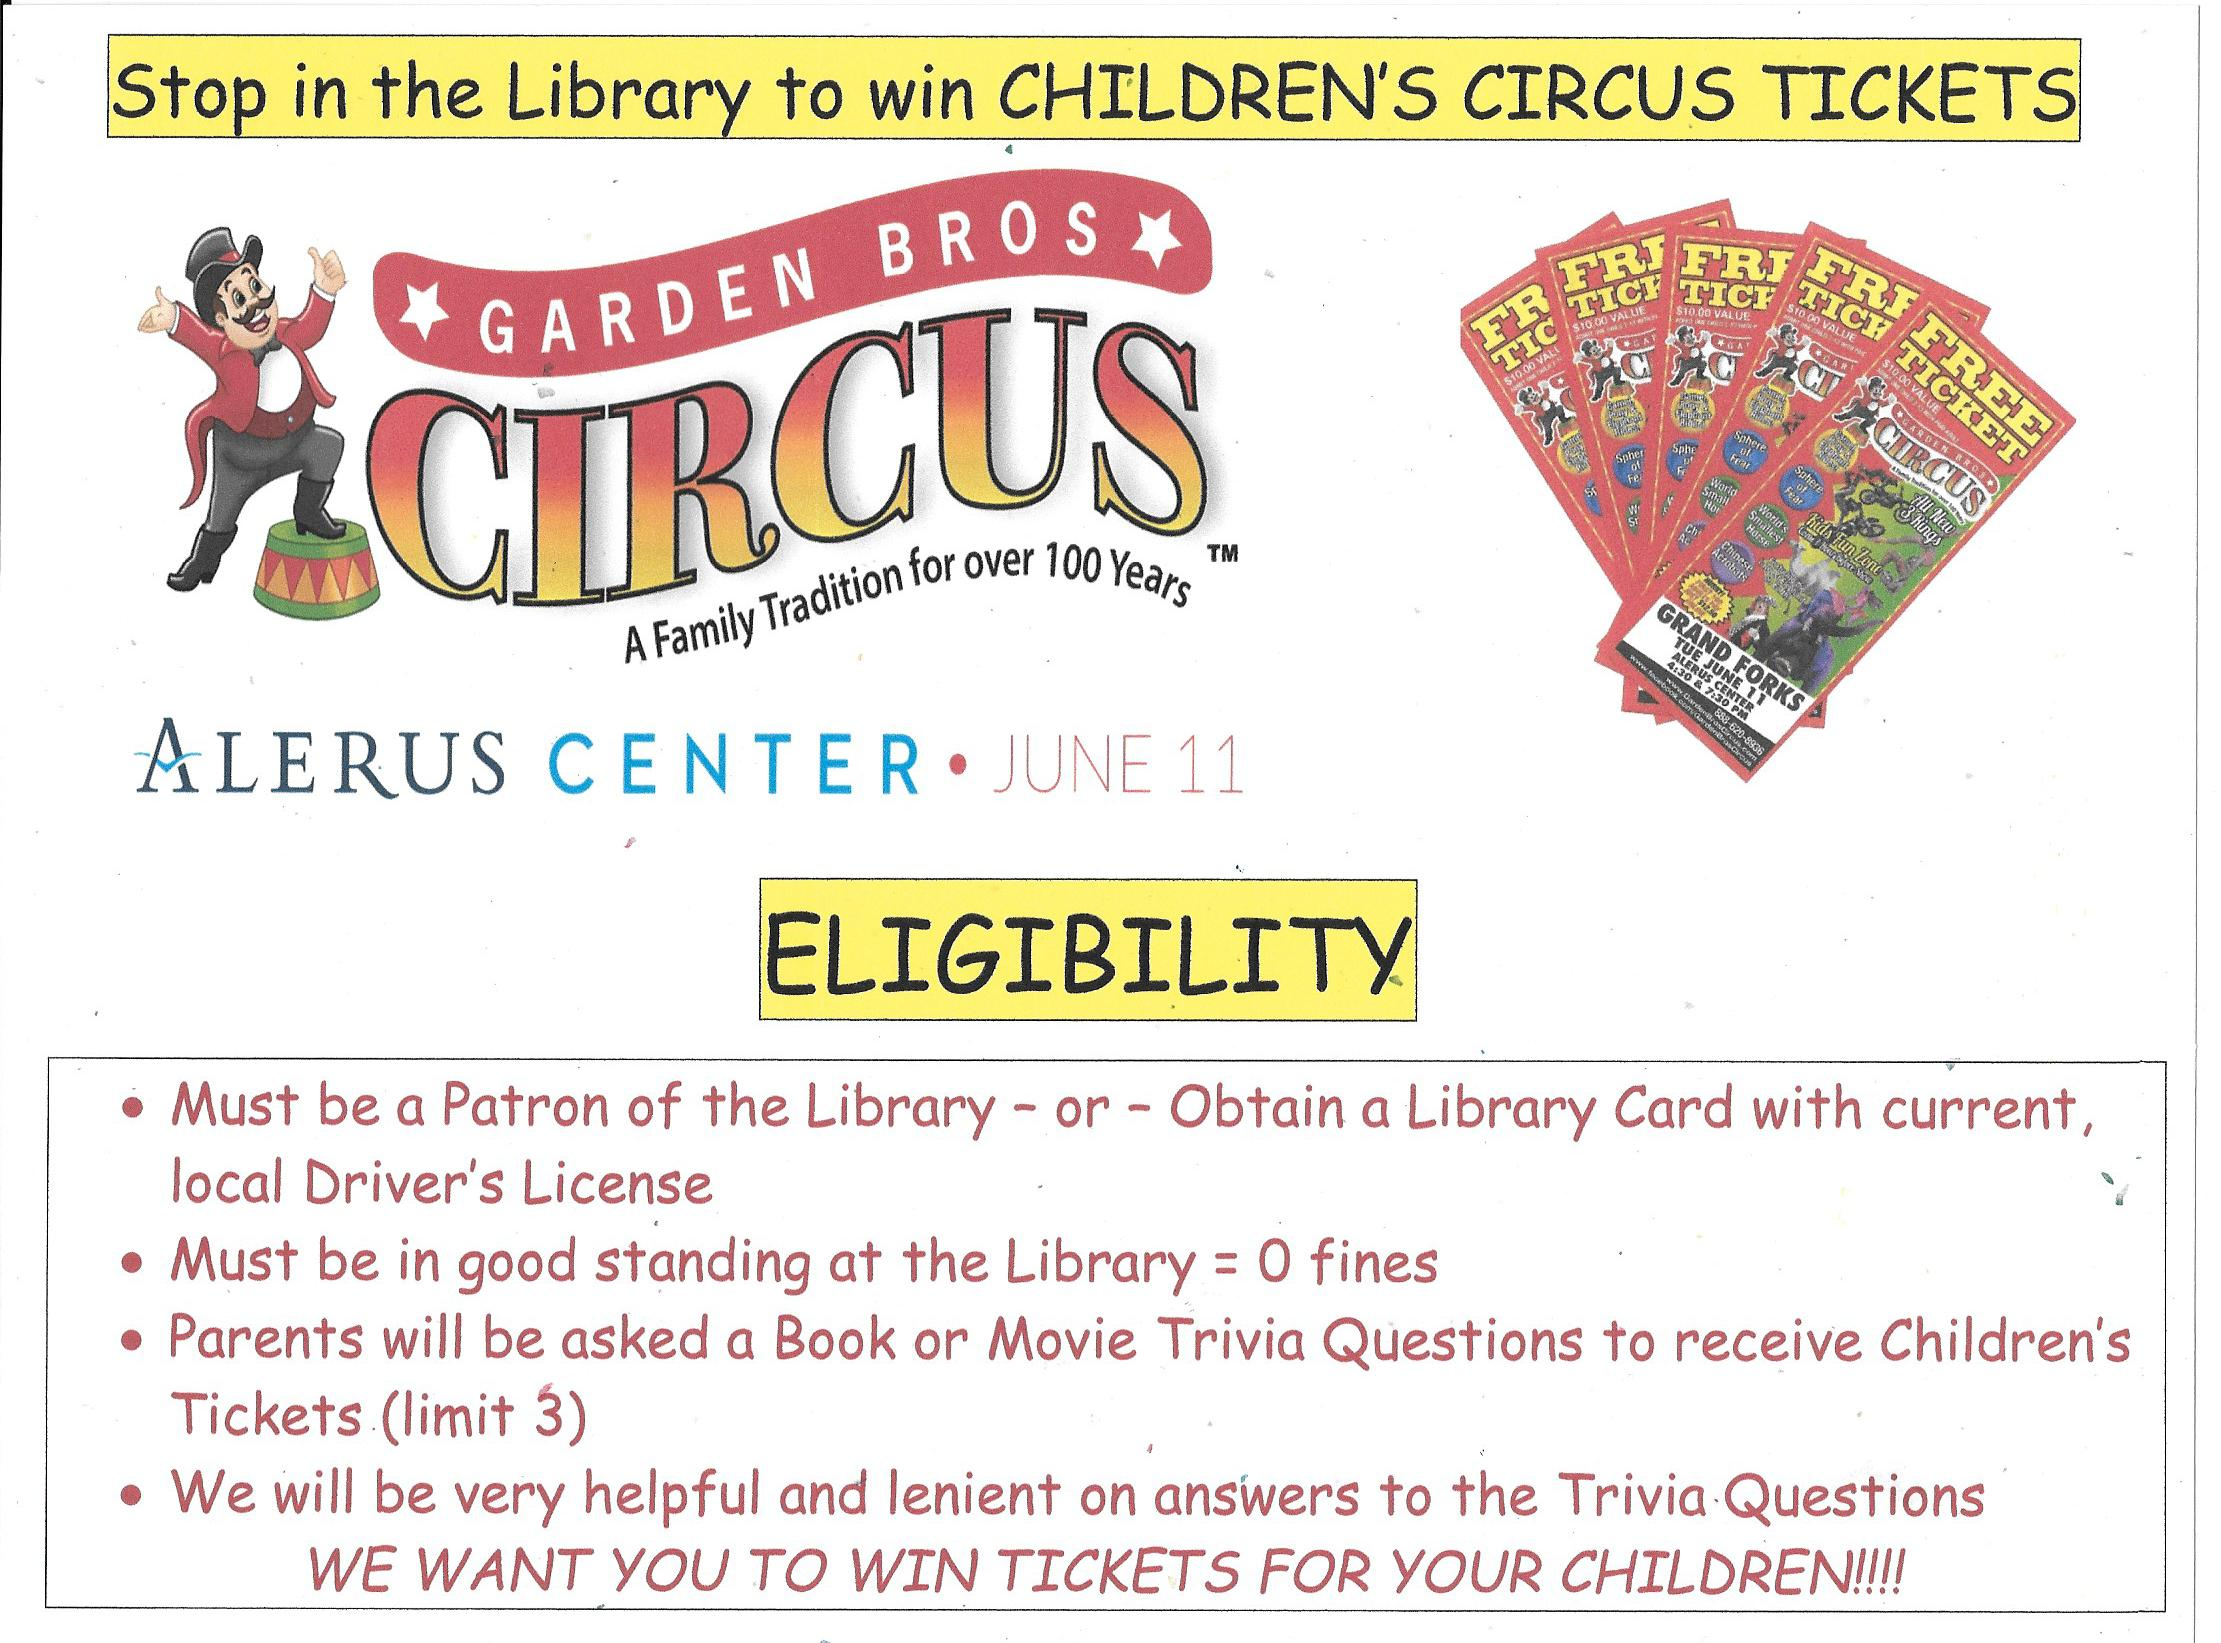 GF Circus Tickets Sign 2019.jpg